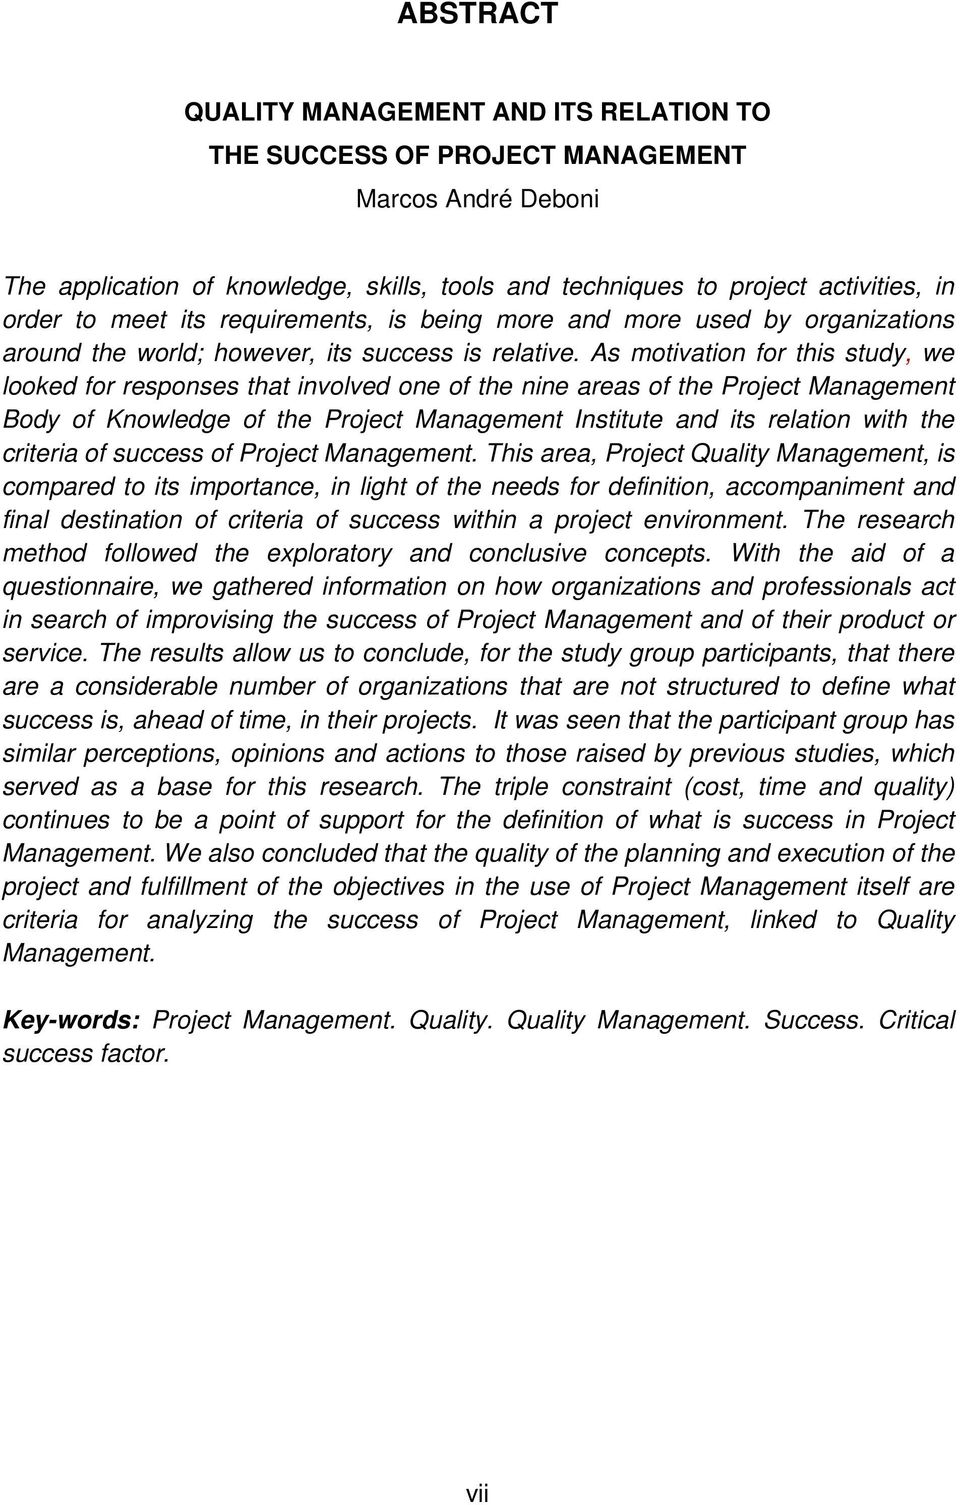 As motivation for this study, we looked for responses that involved one of the nine areas of the Project Management Body of Knowledge of the Project Management Institute and its relation with the